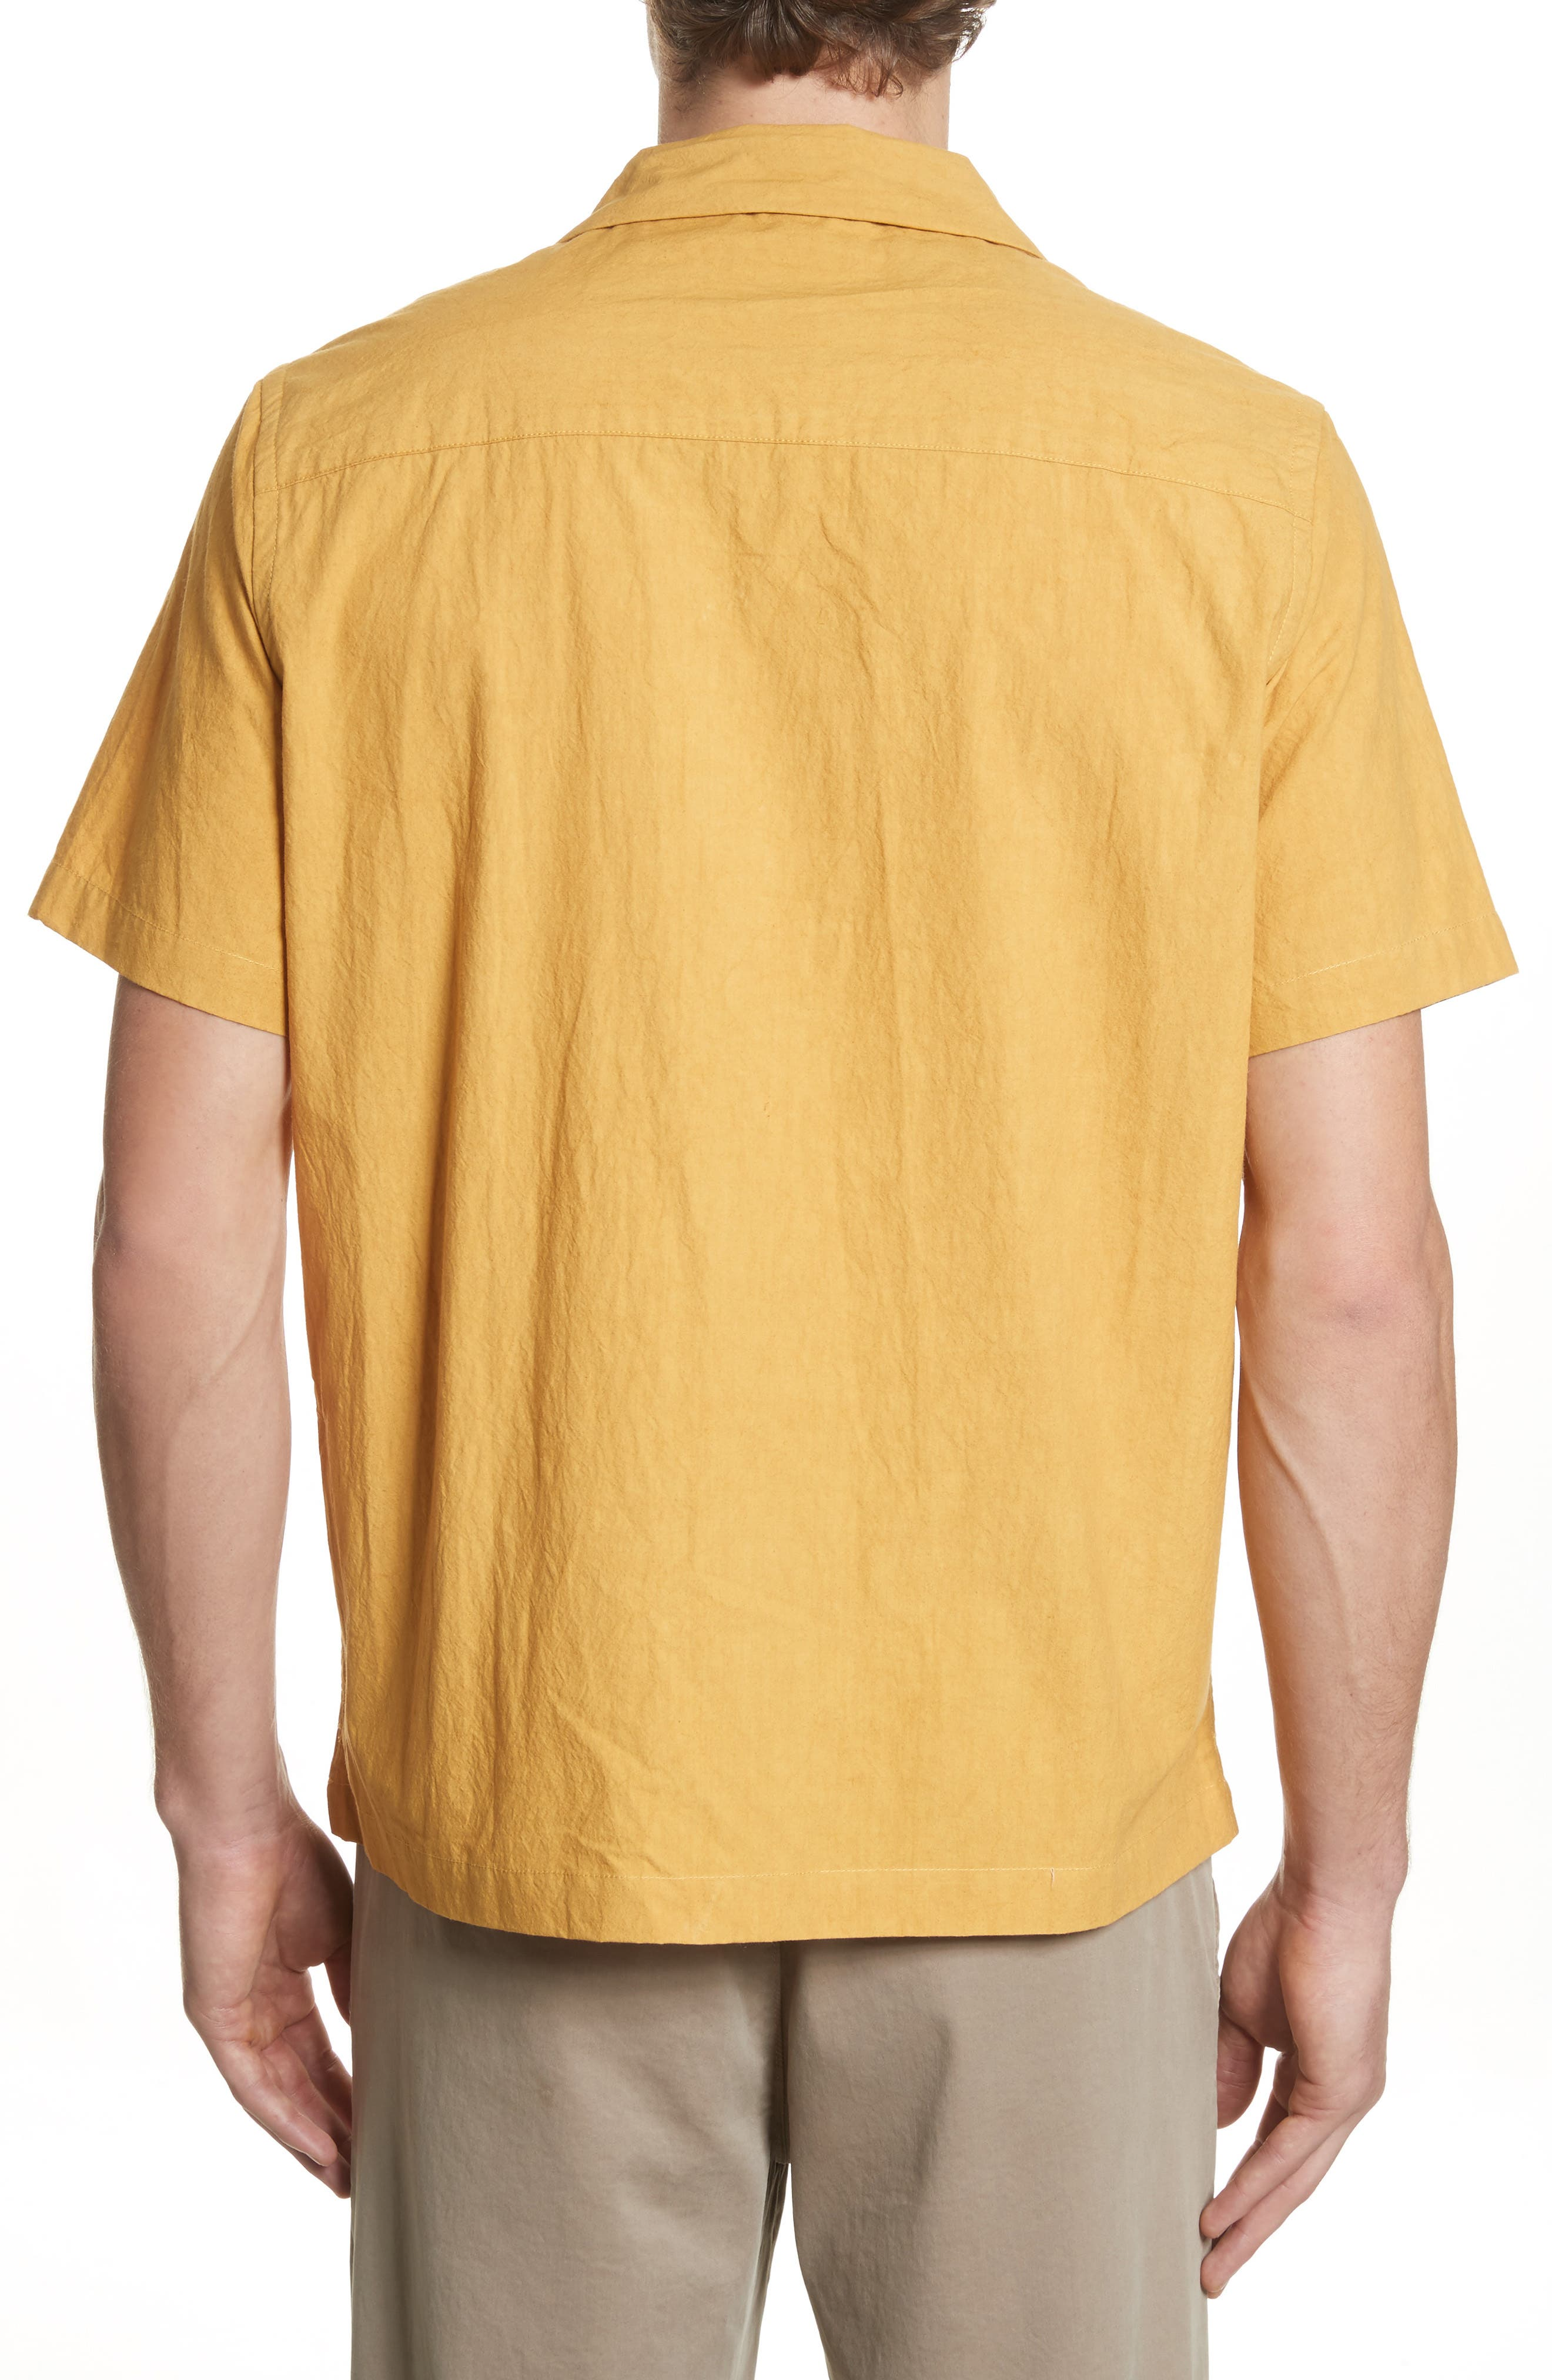 Canty Woven Camp Shirt,                             Alternate thumbnail 2, color,                             725